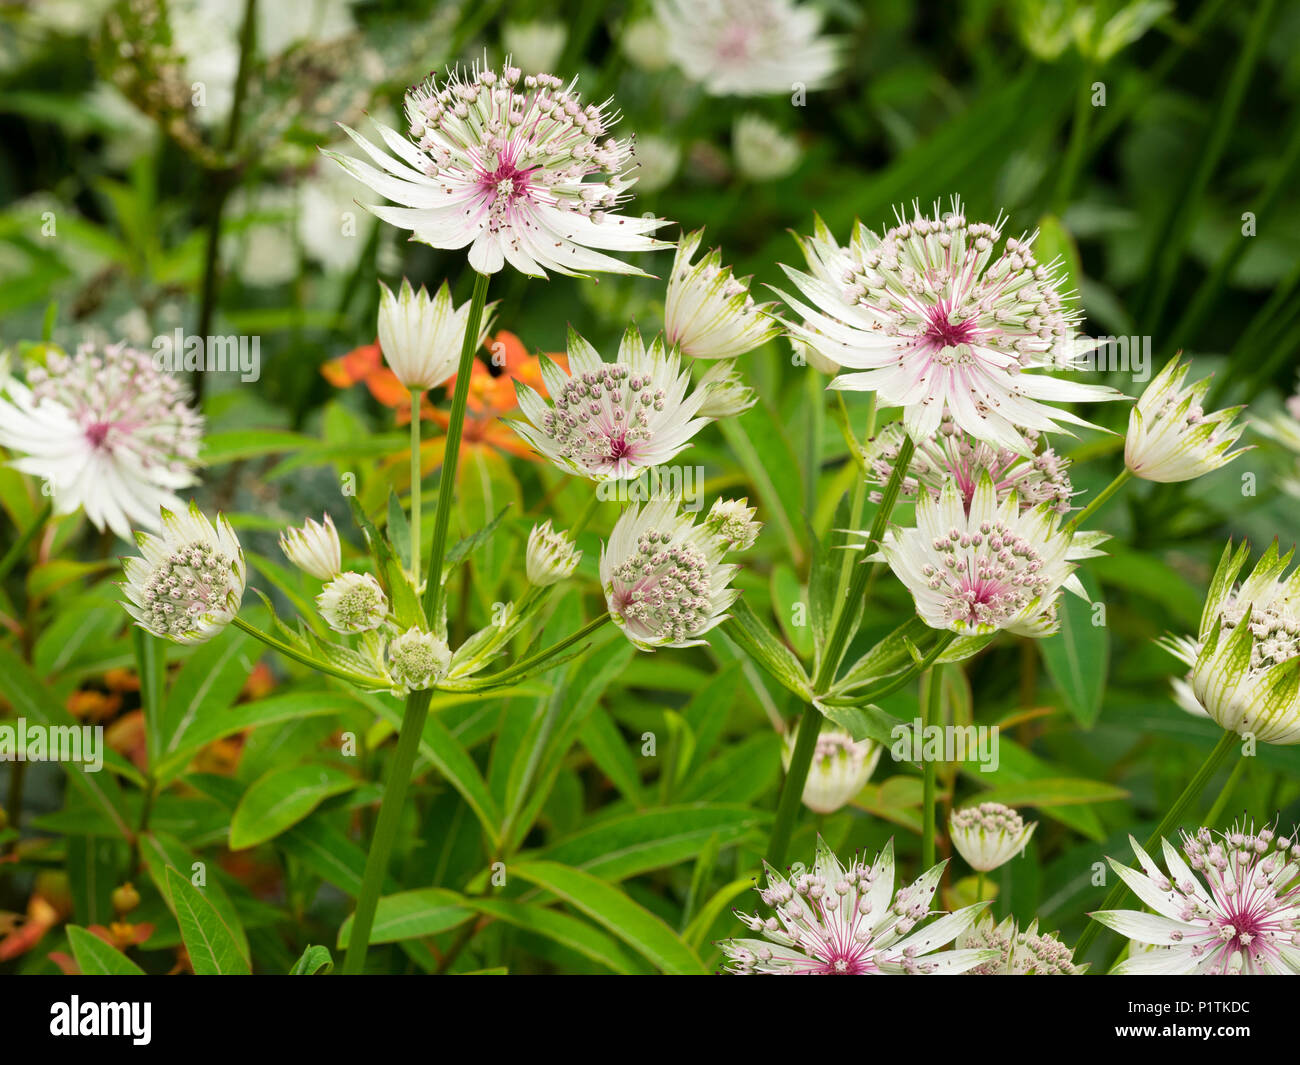 Green tipped white flowers of the hardy perennial masterwort, Astrantia major 'Buckland'.  Mature flowers develop a pink flush at the base - Stock Image